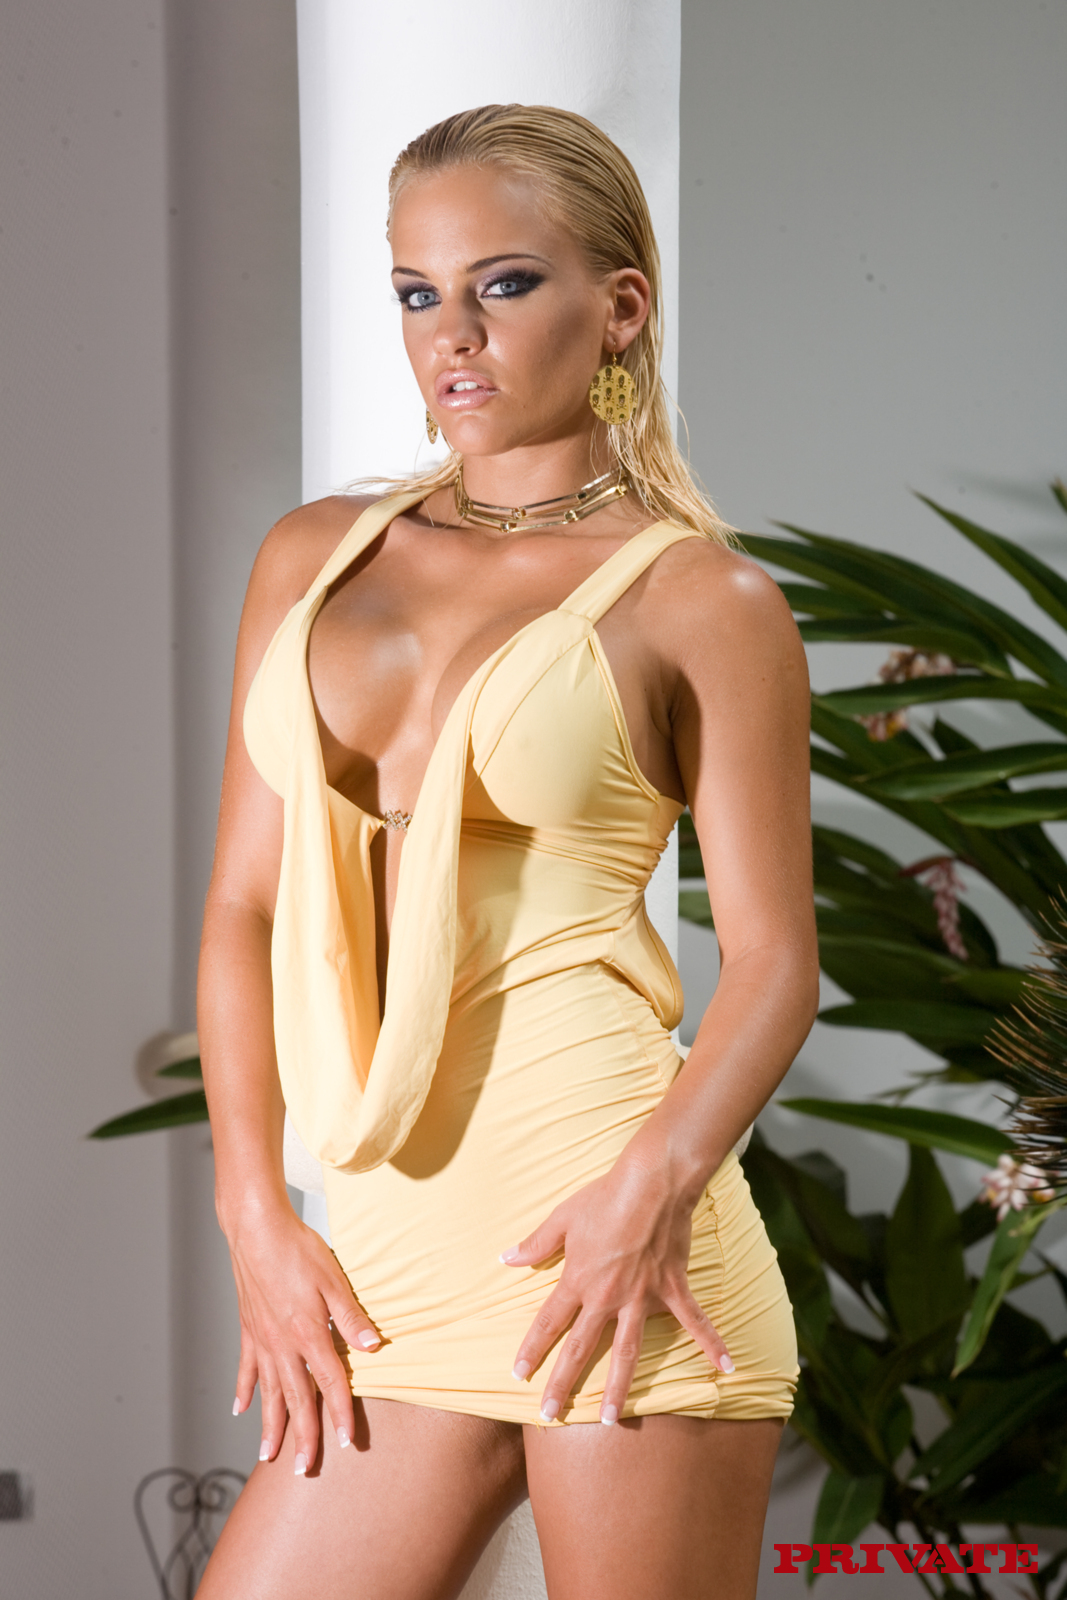 Britney Star Pictures and Movies at Freeones 22